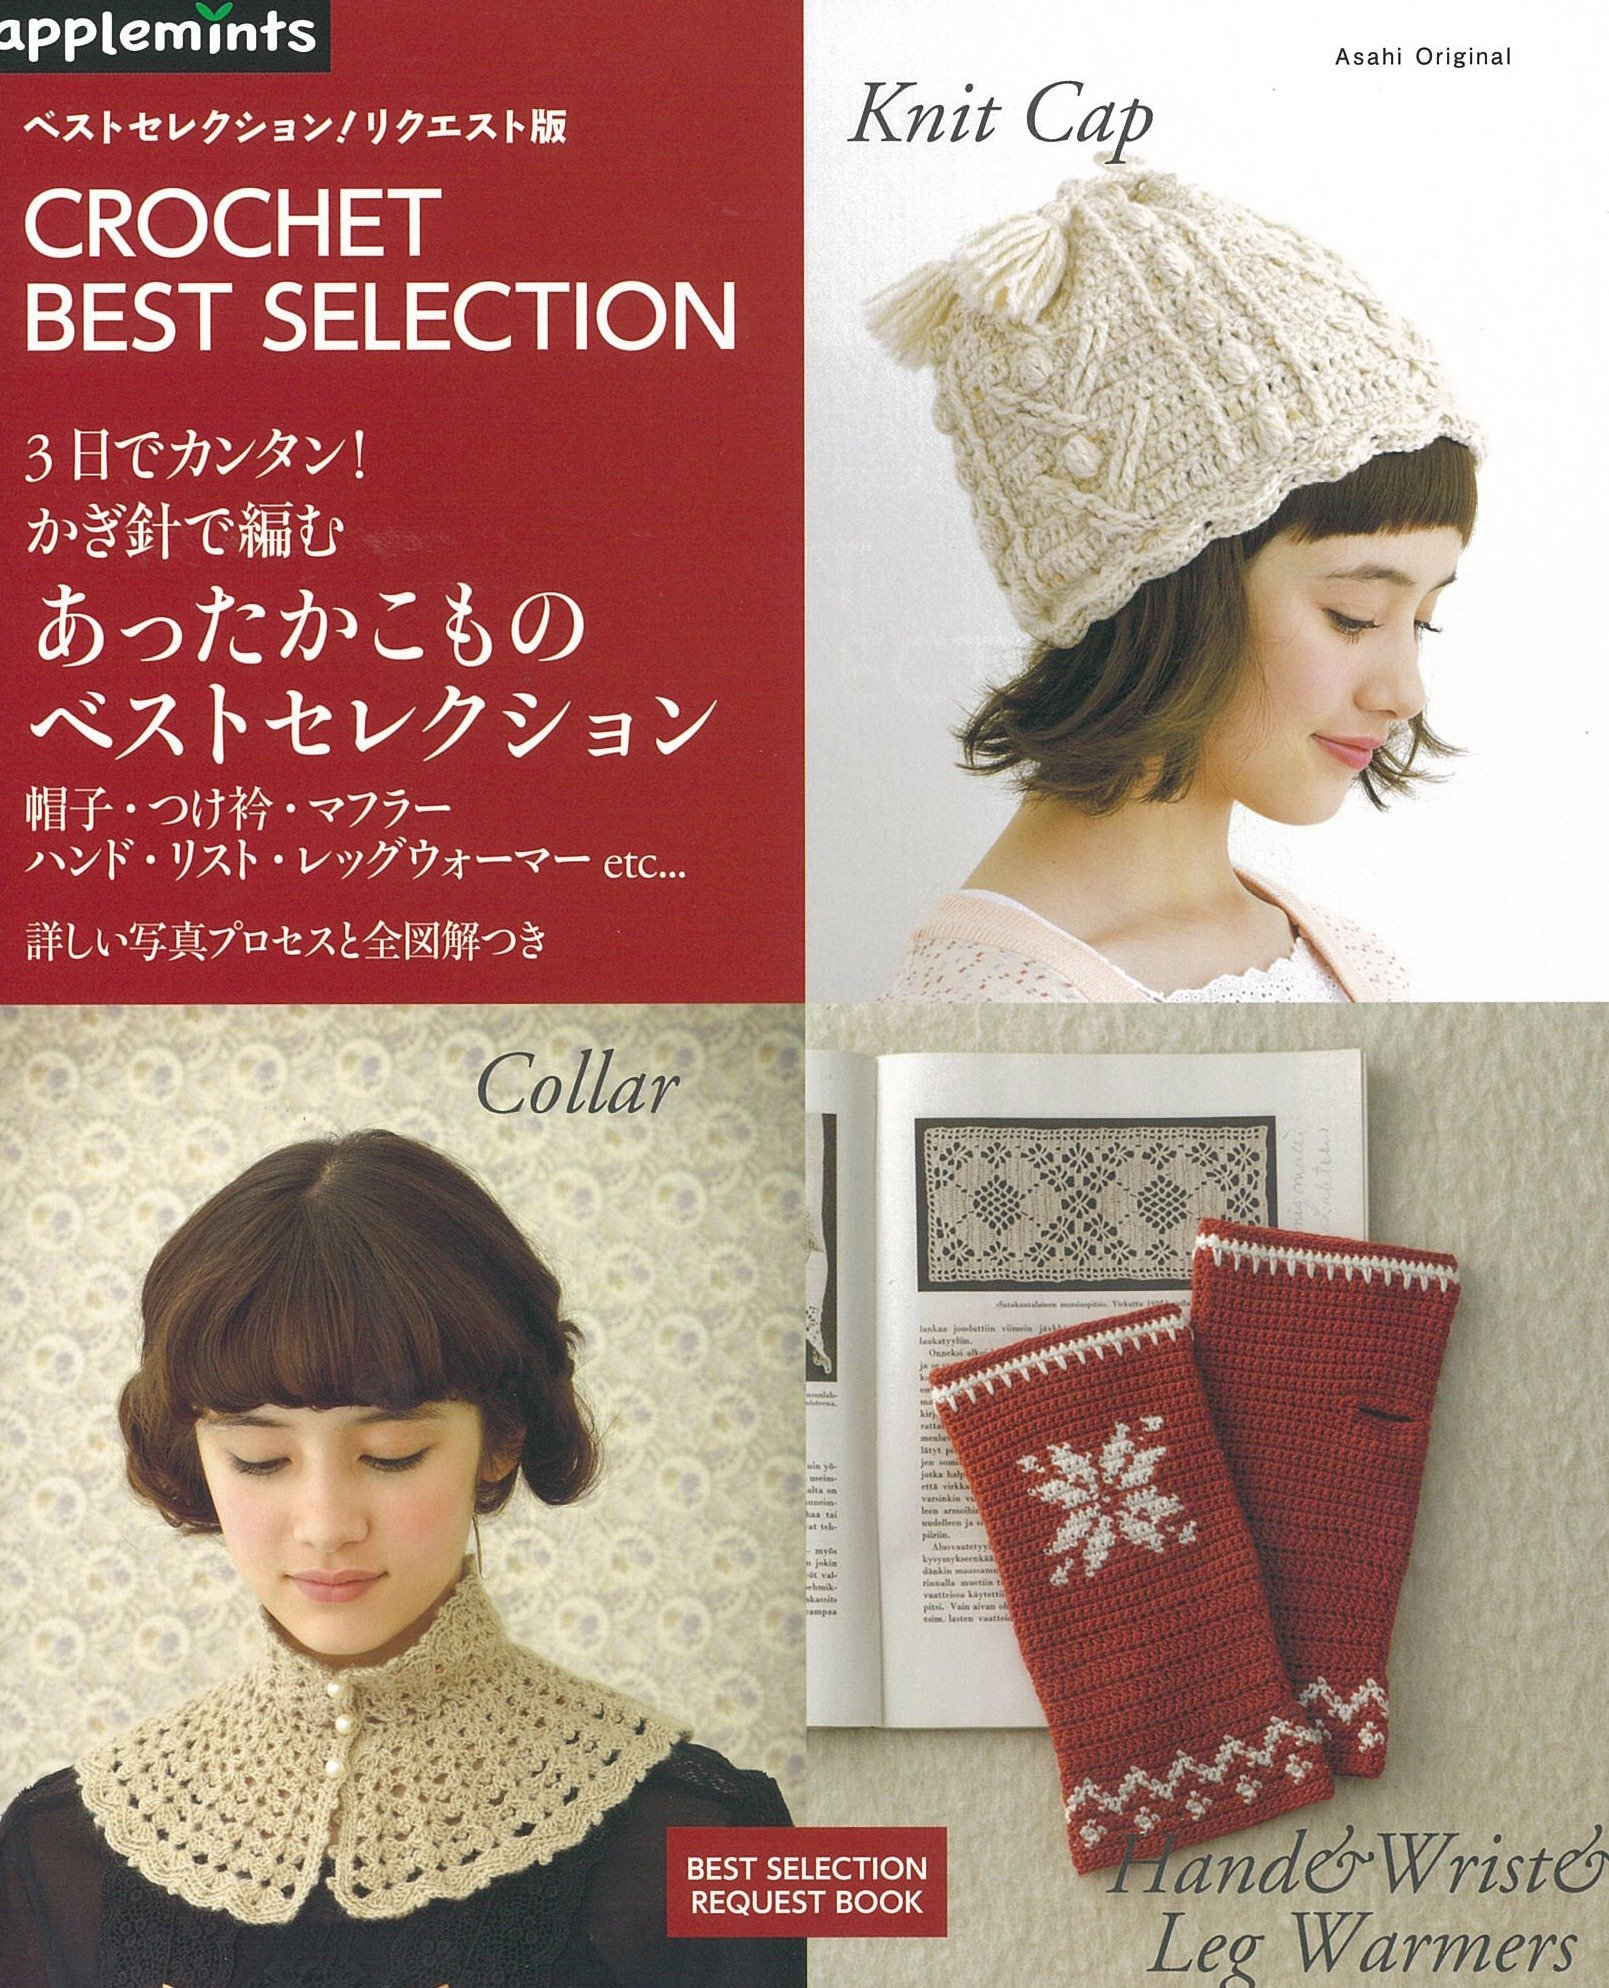 Best Selection with easy crochet 3D Accessories